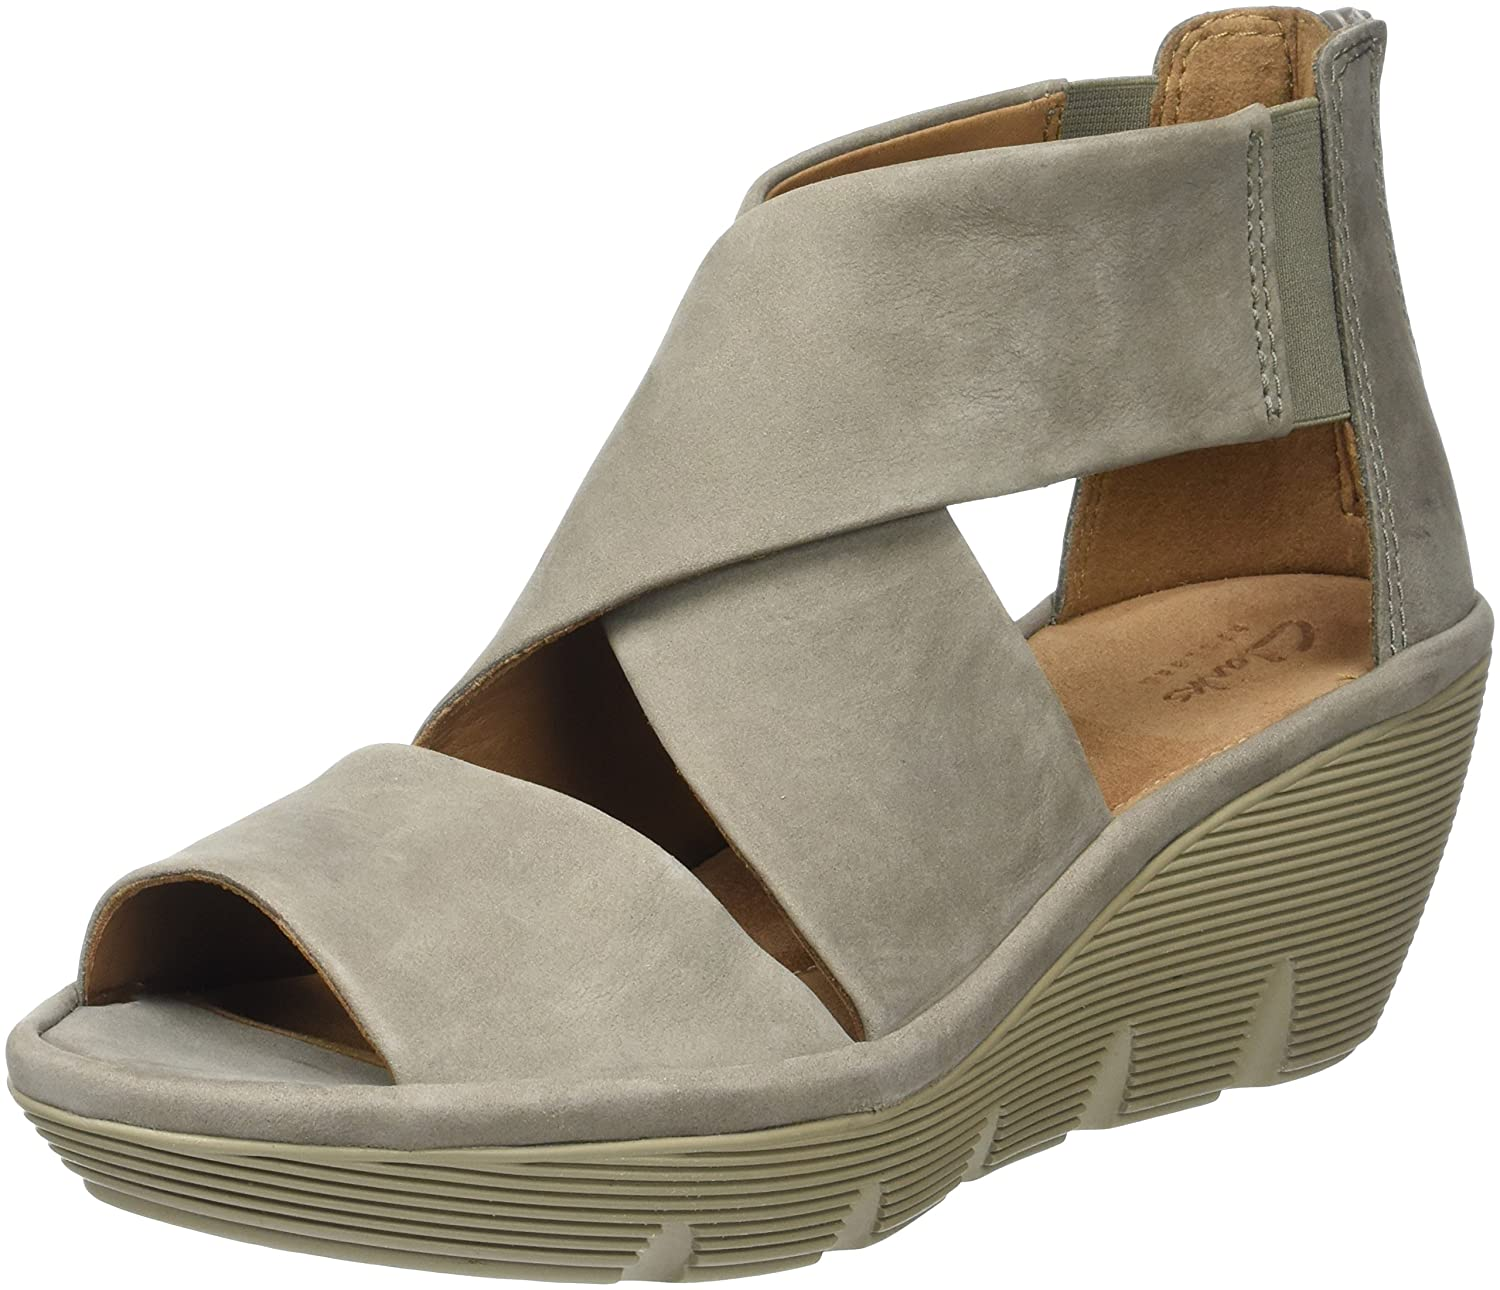 12f9fe488c6 Clarks Women s Clarene Glamor Wedge Heels Sandals  Amazon.co.uk  Shoes    Bags